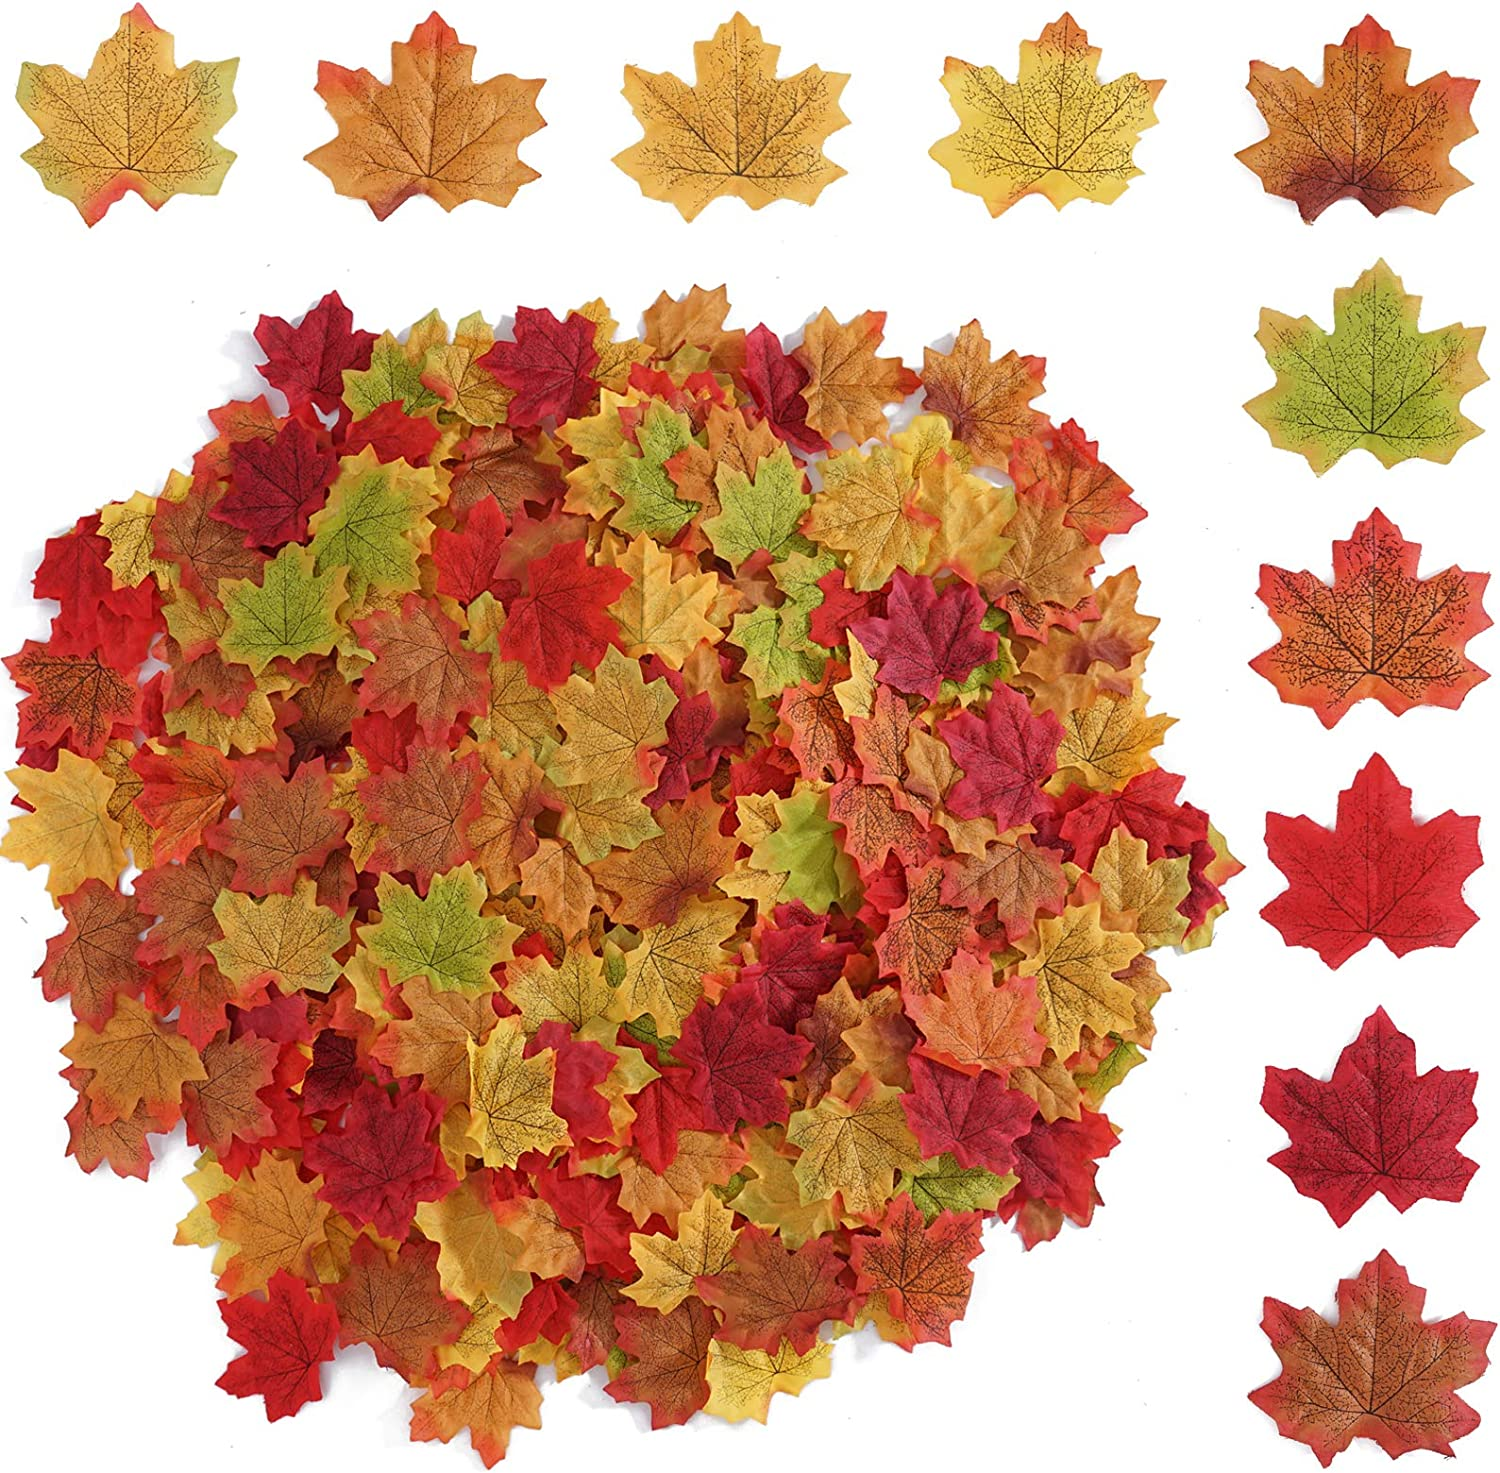 Beferr 1000 PCS Mixed Color Autumn Artificial Maple Leaves for Fall Halloween Thanksgiving Weddings Party Festival Table Decorations